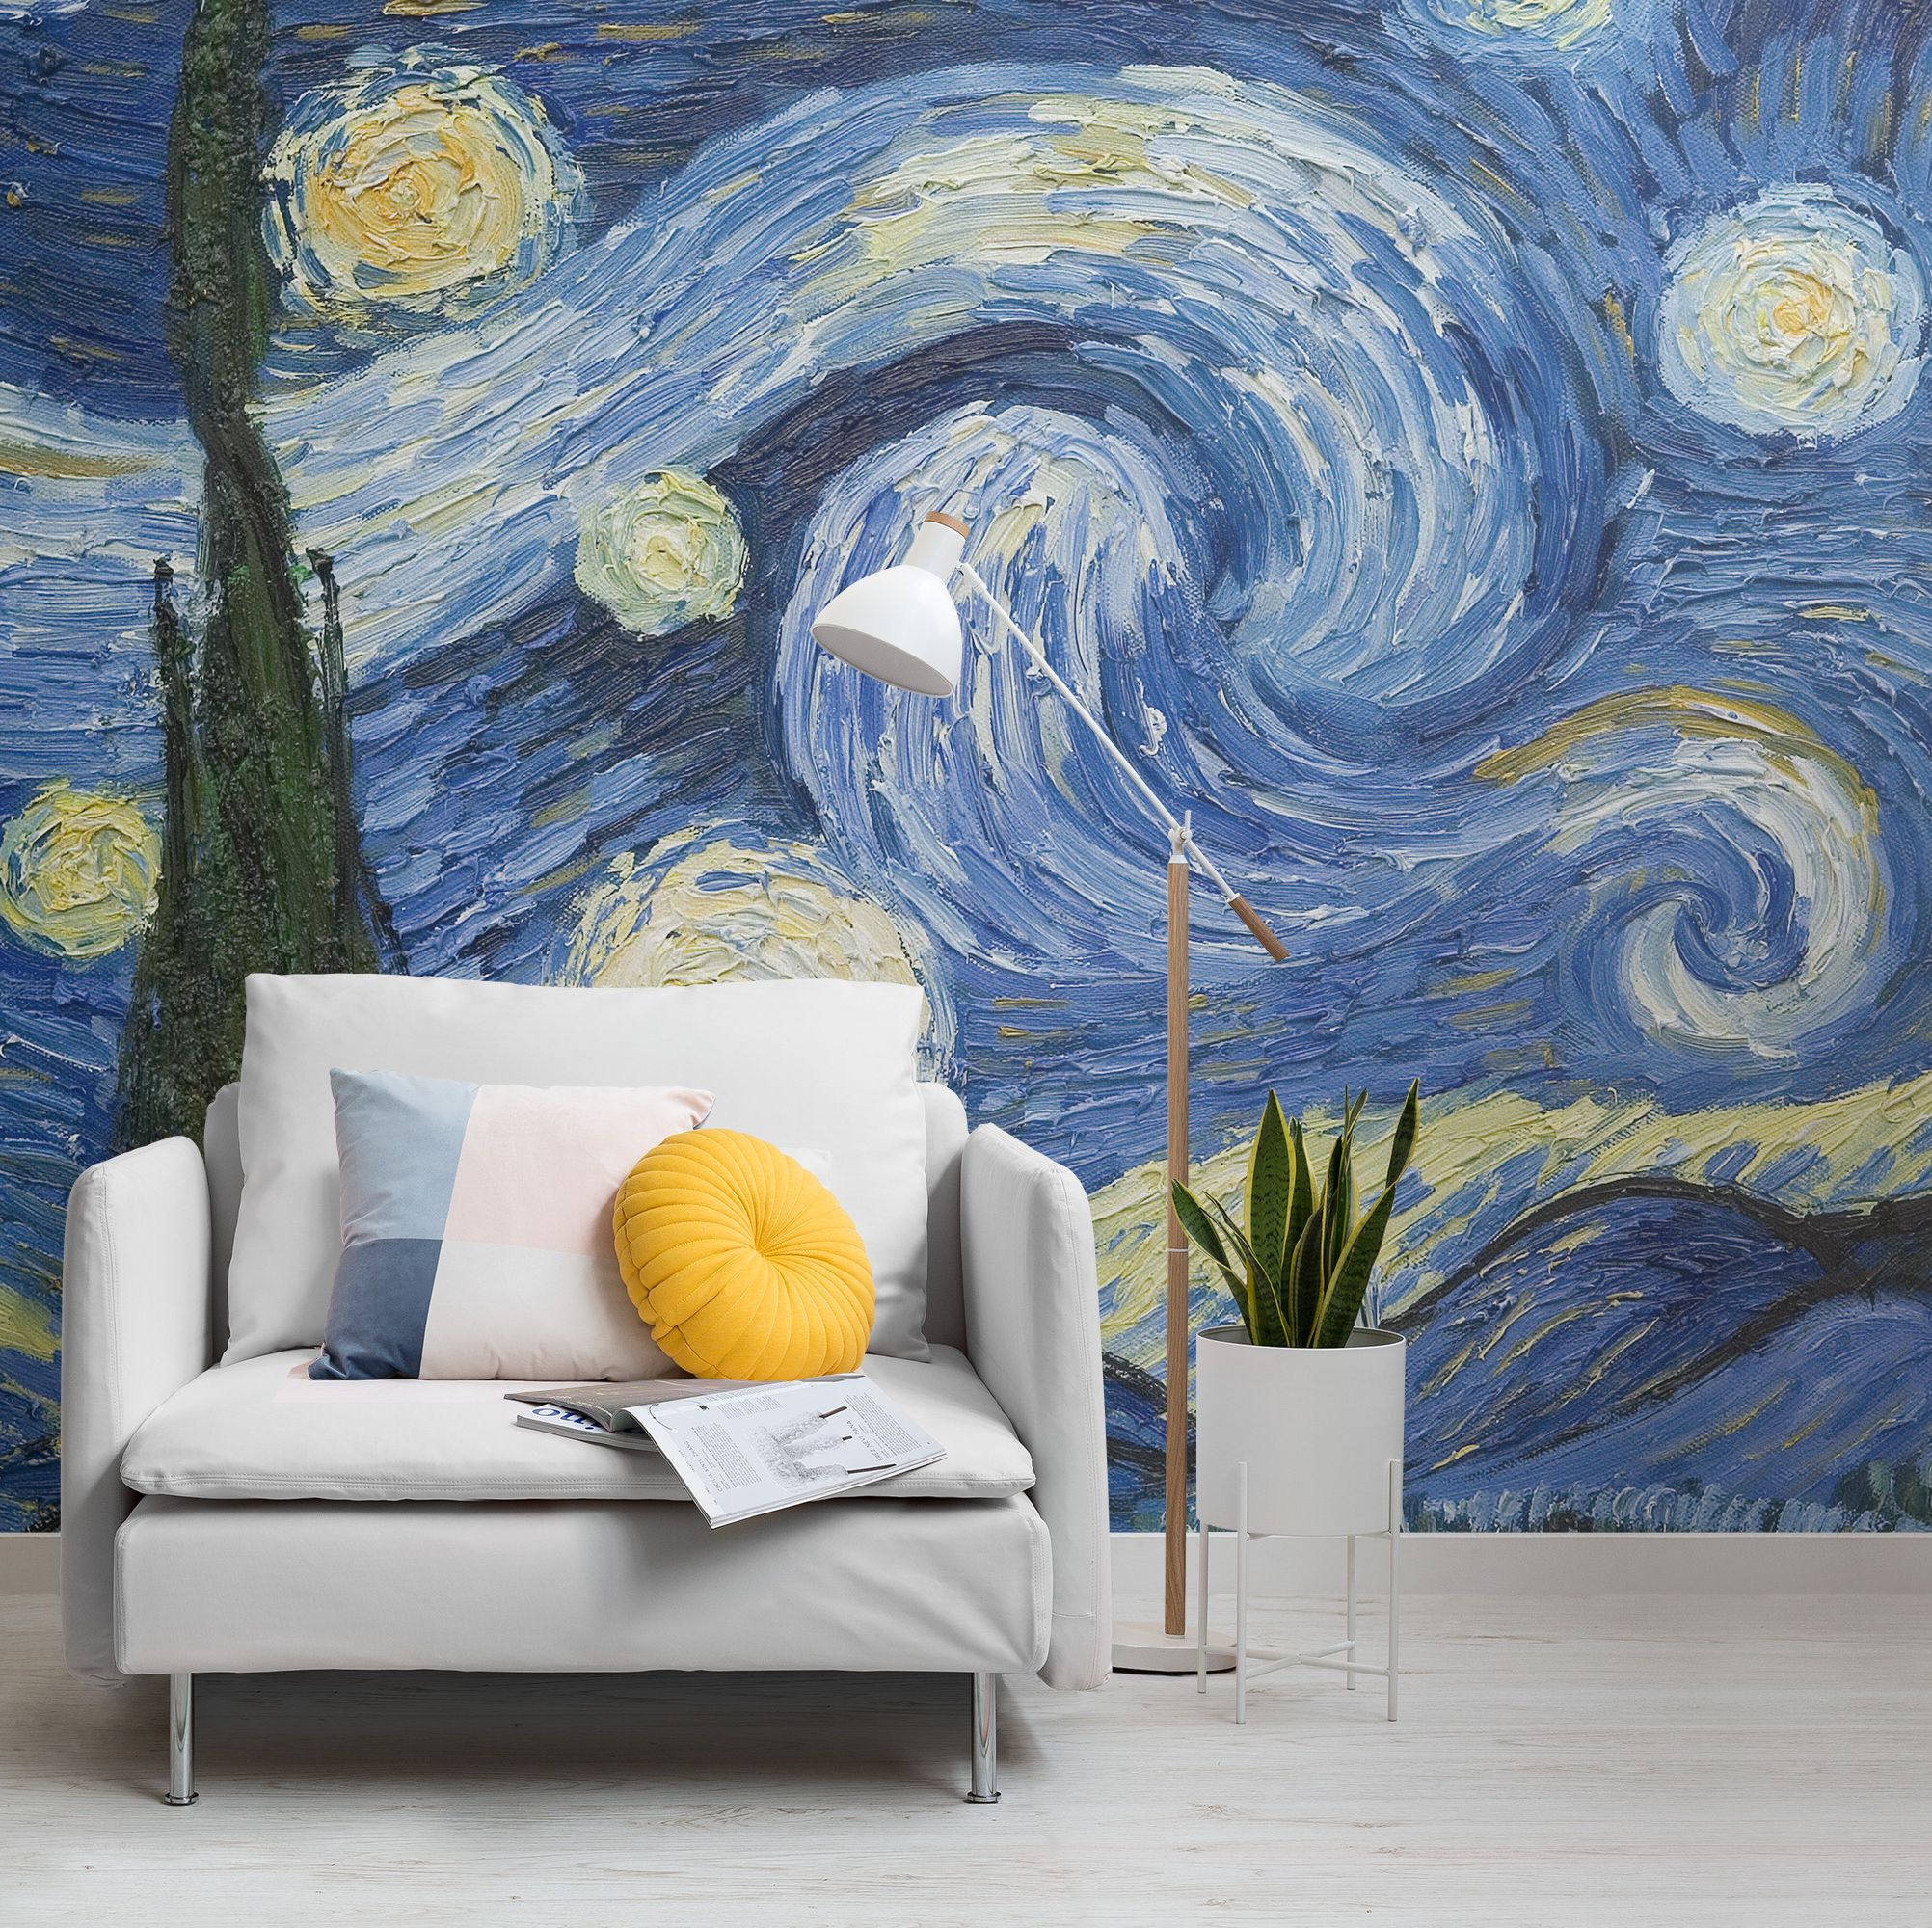 Iconic Van Gogh paintings are now available as wallpaper